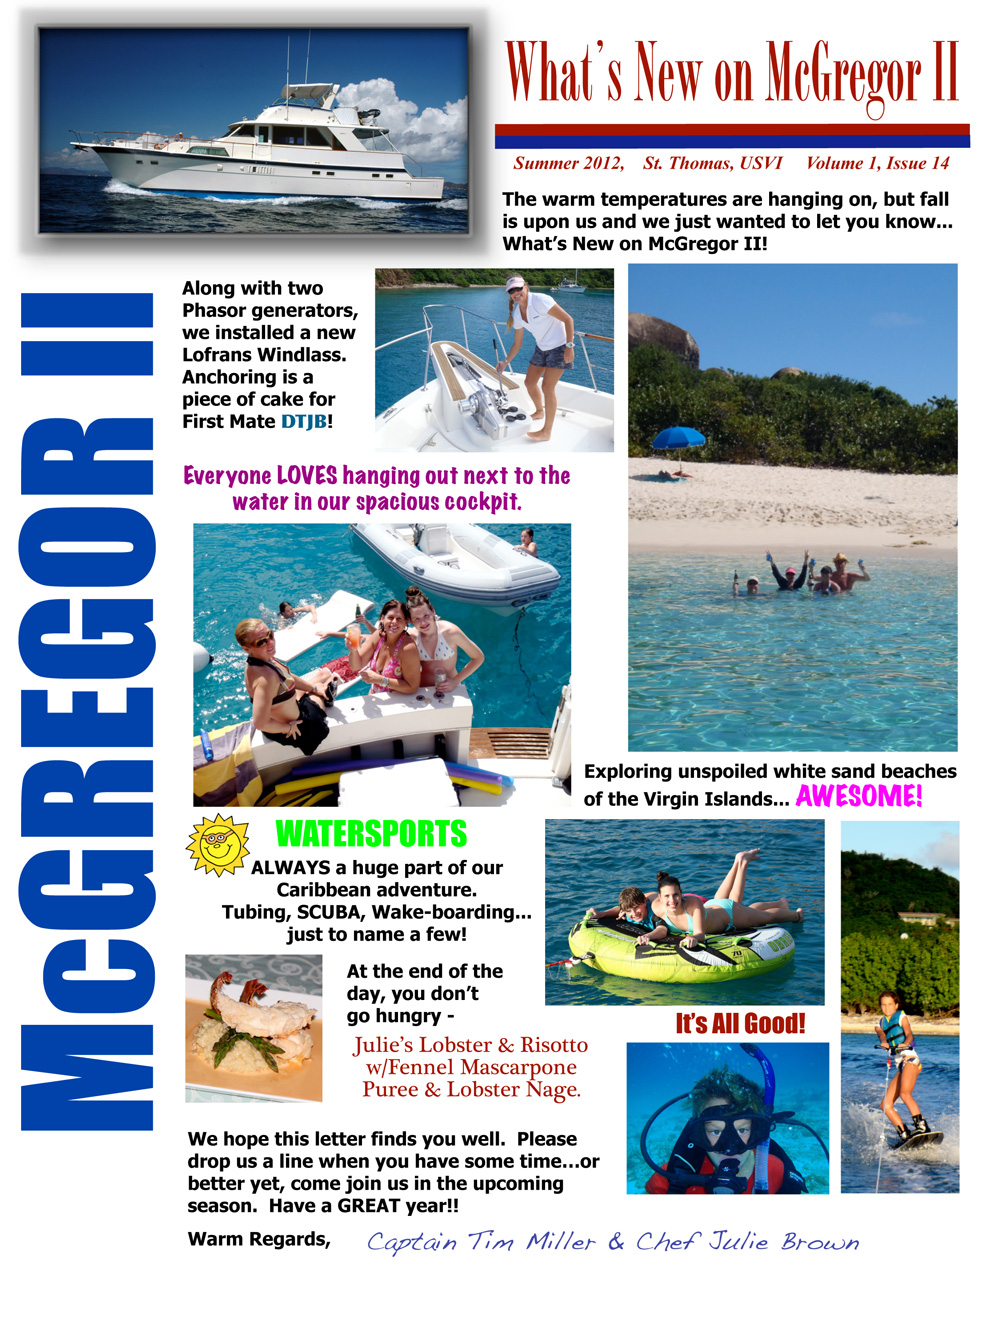 All About Yacht Charters, Sailing Vacations: Charter Yacht McGregor ...